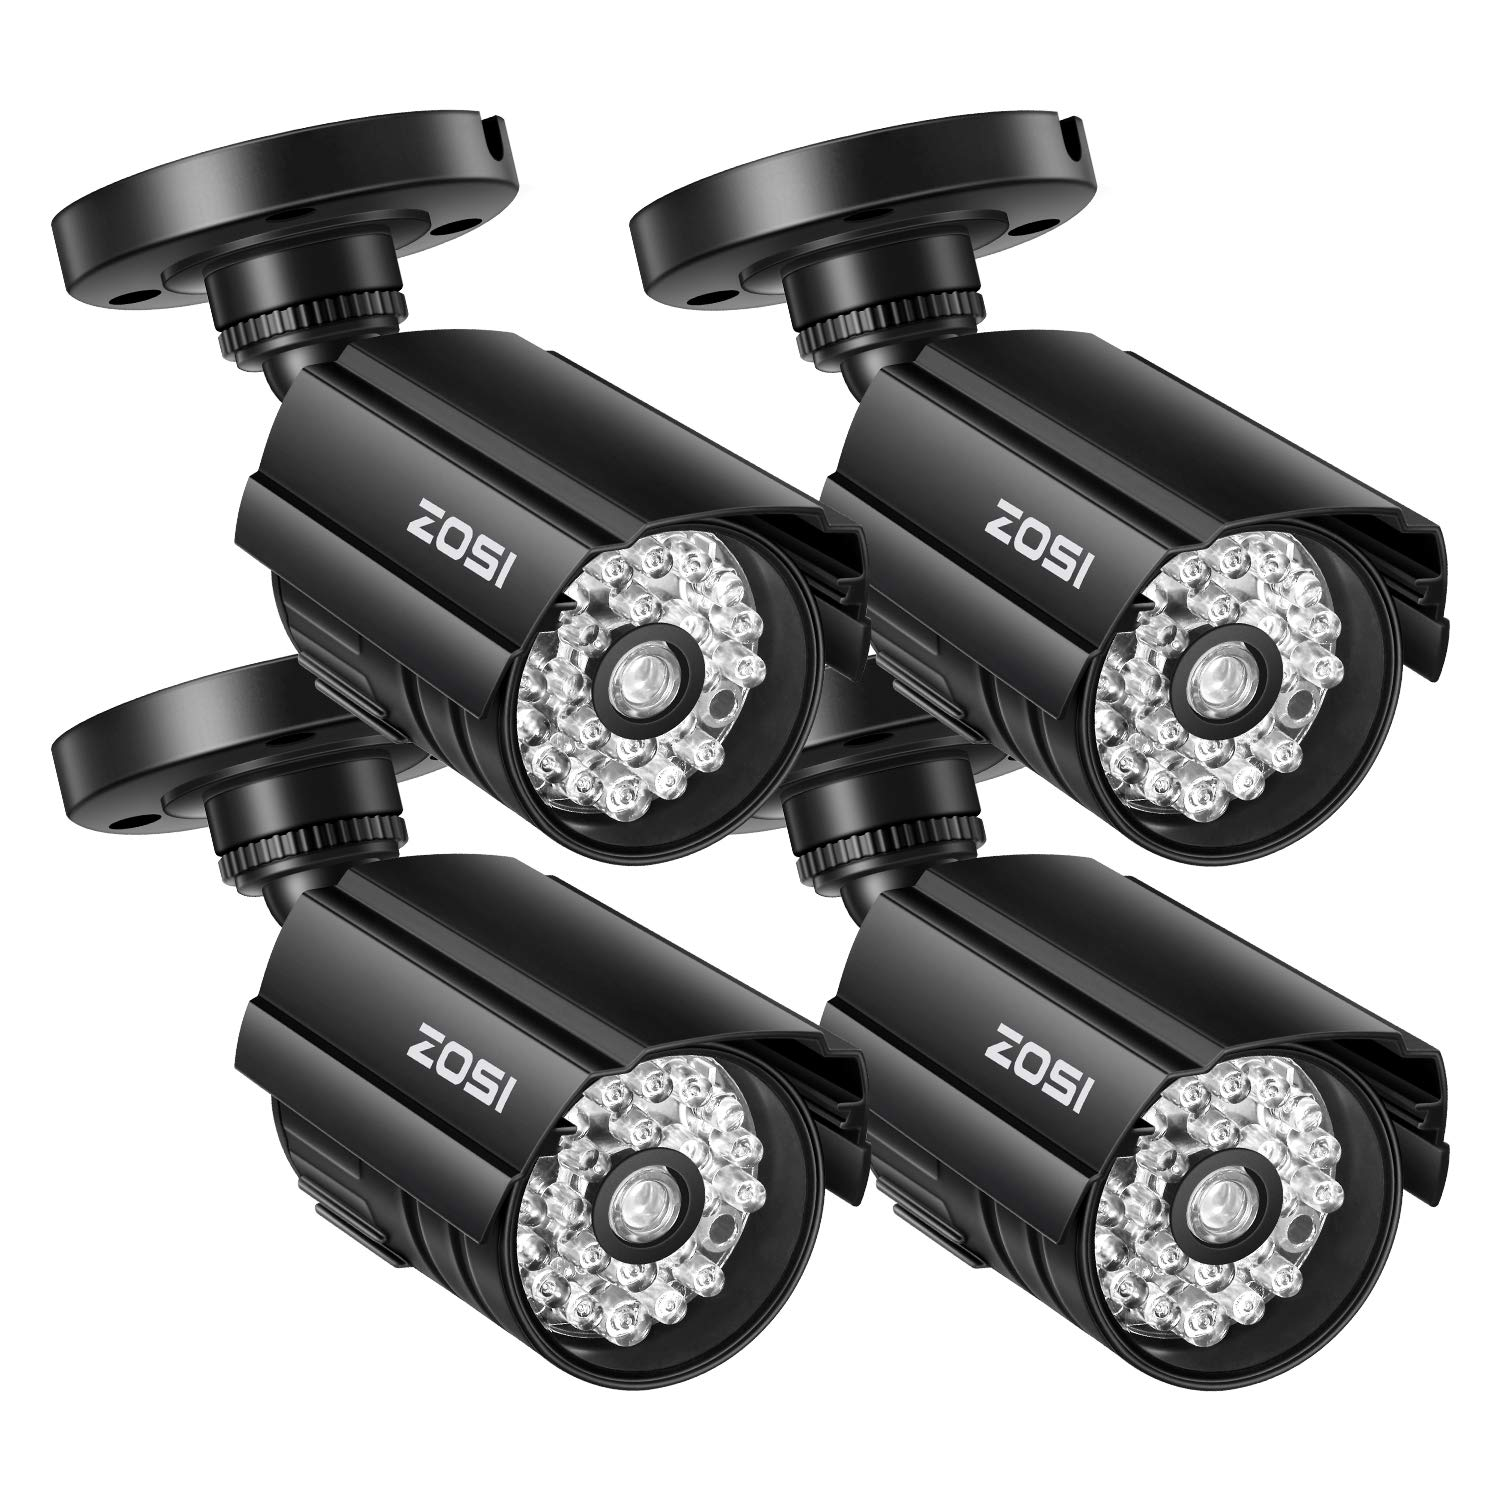 ZOSI 4 Pack Fake Security Camera Bullet with Red Light, Dummy Surveillance Camera Outdoor